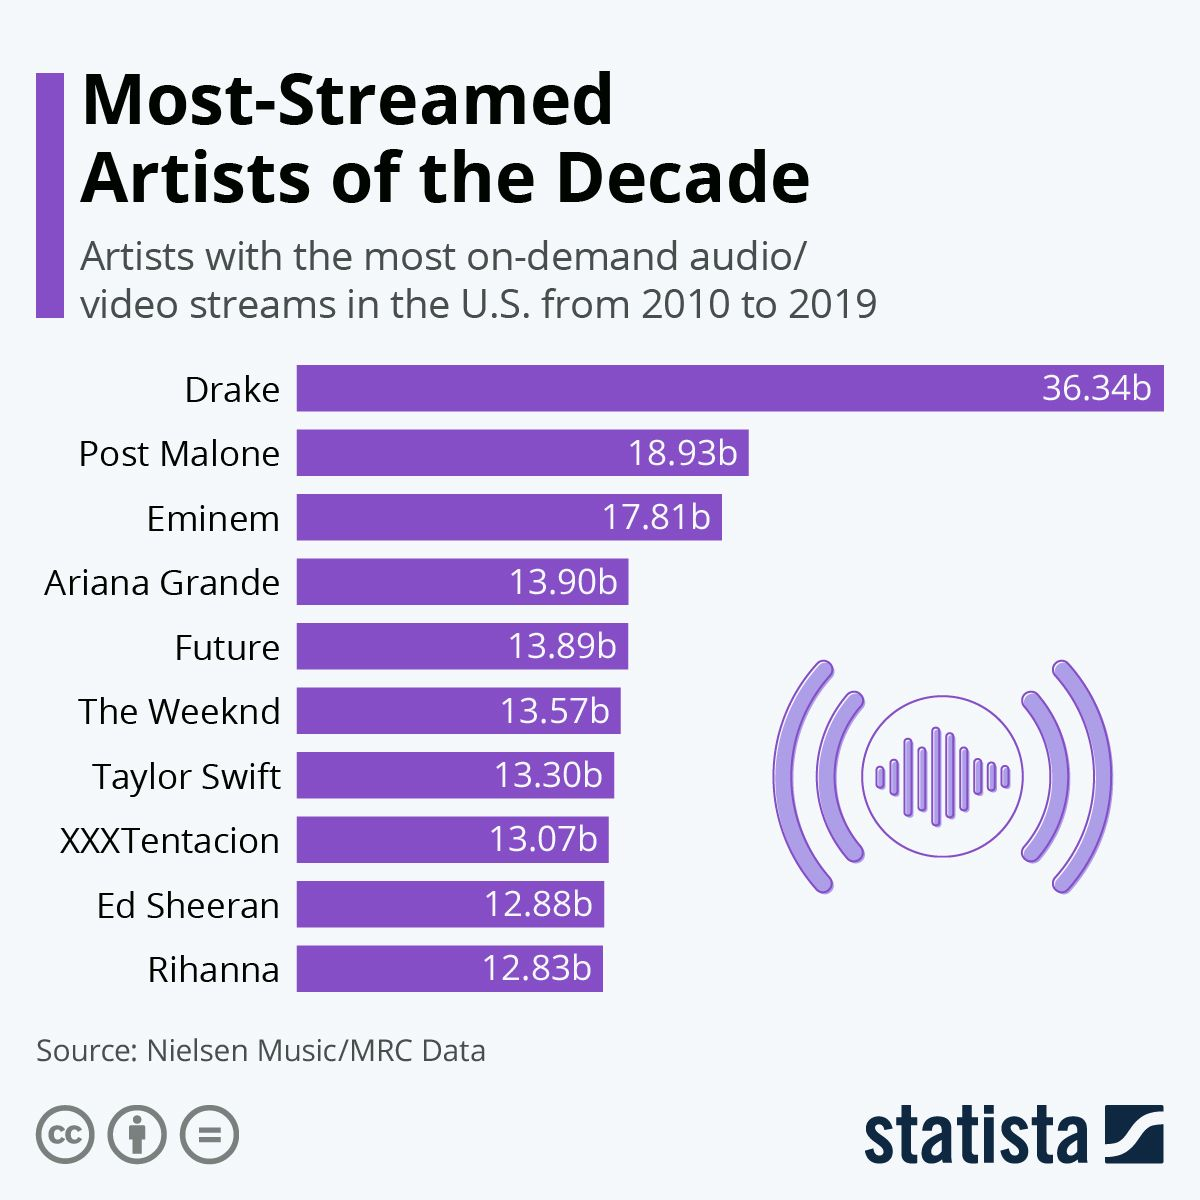 Infographic MostStreamed Artists of the Decade in 2020